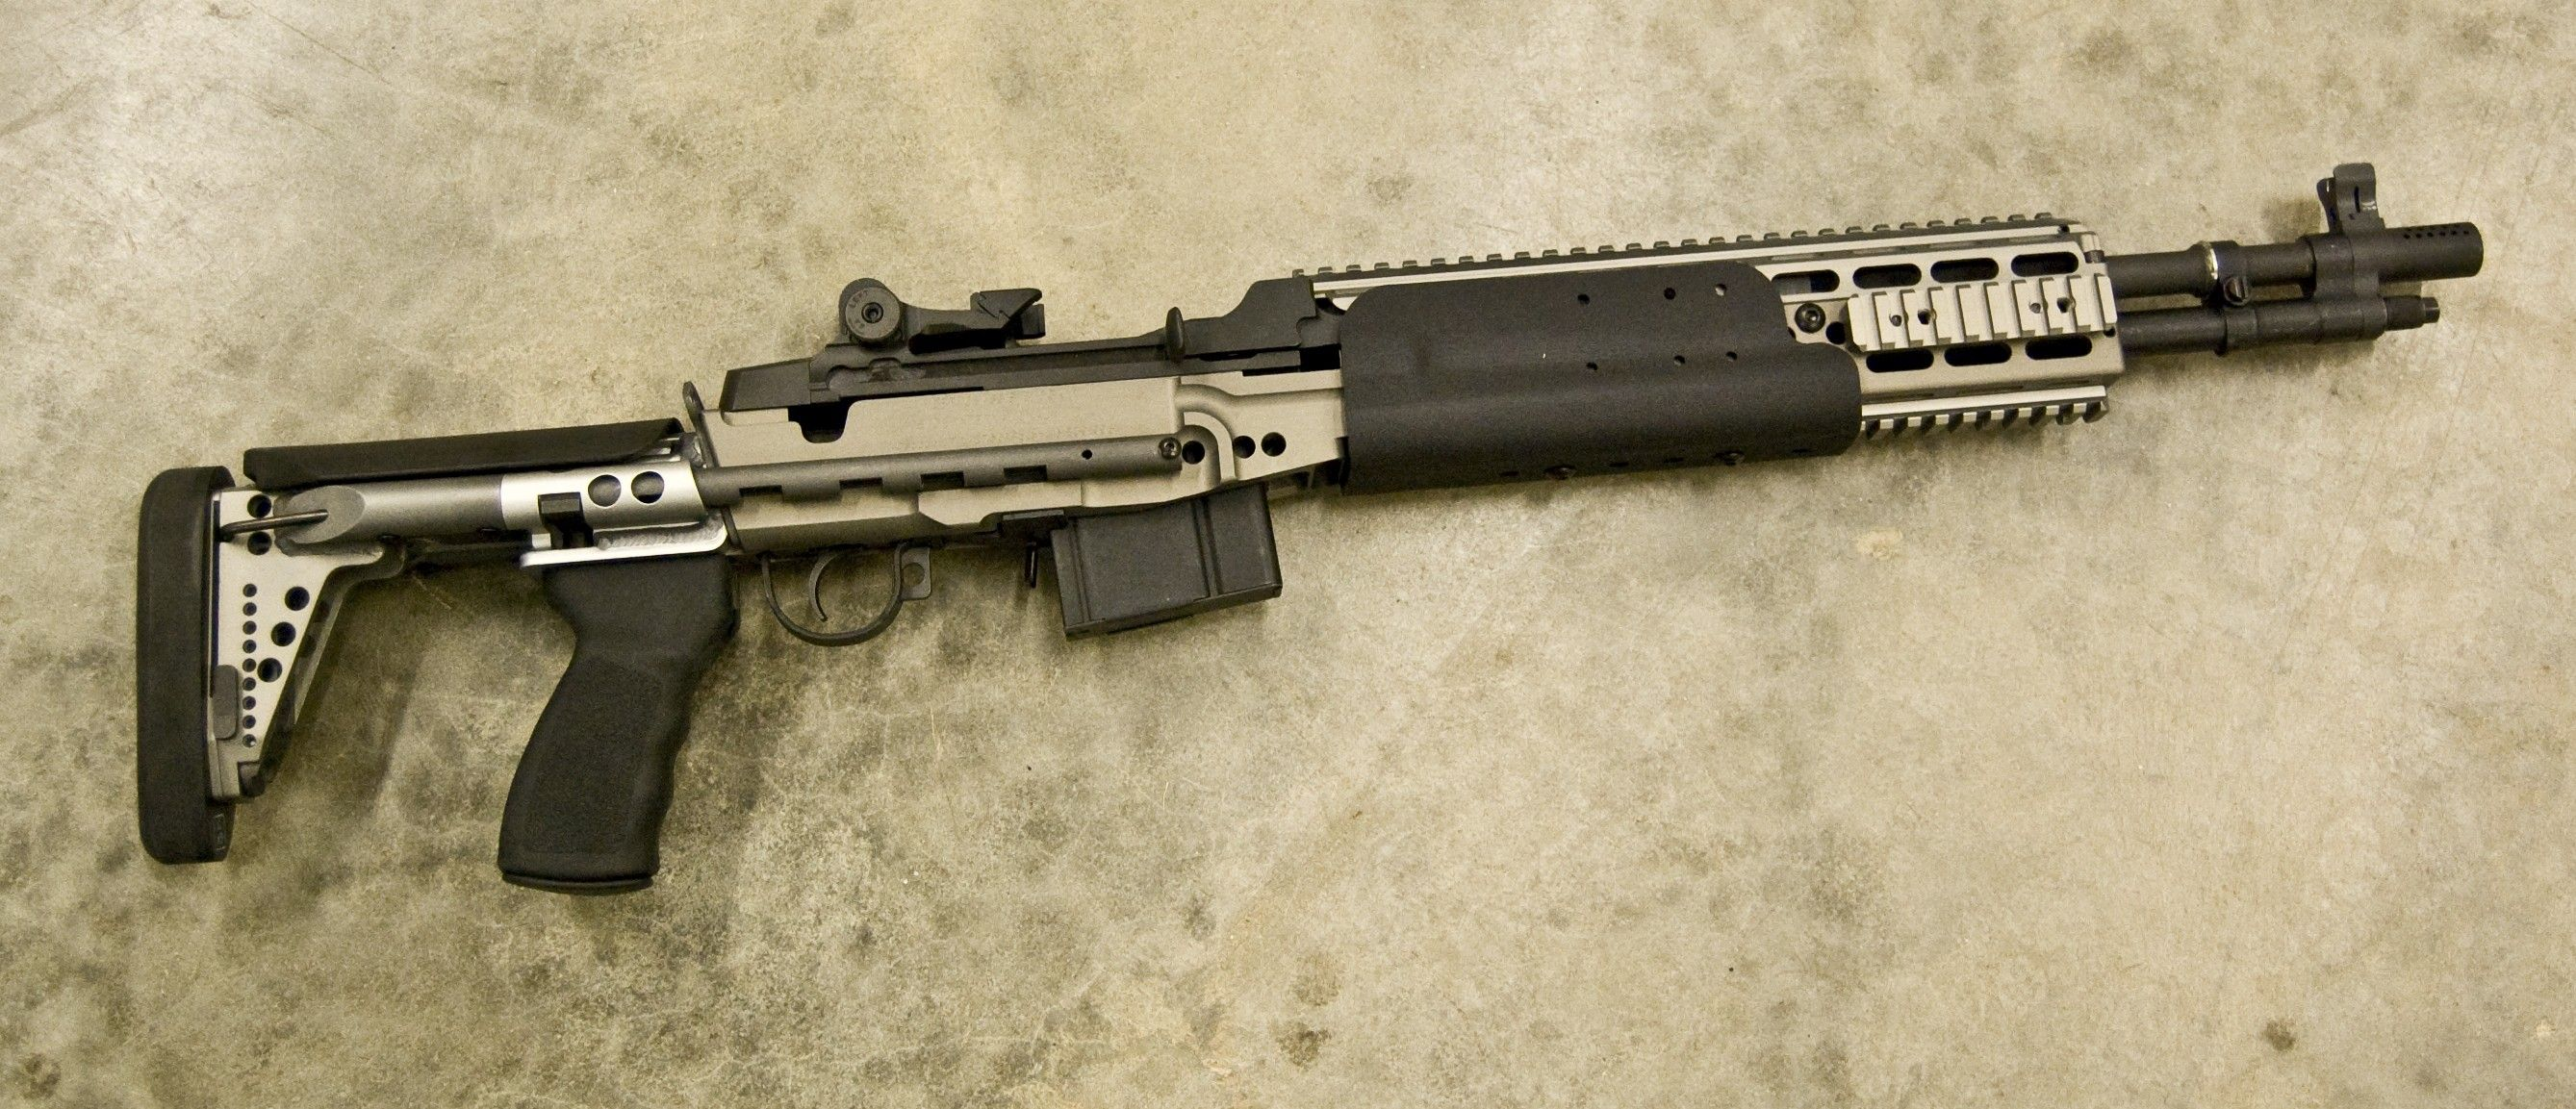 Stock options for m1a